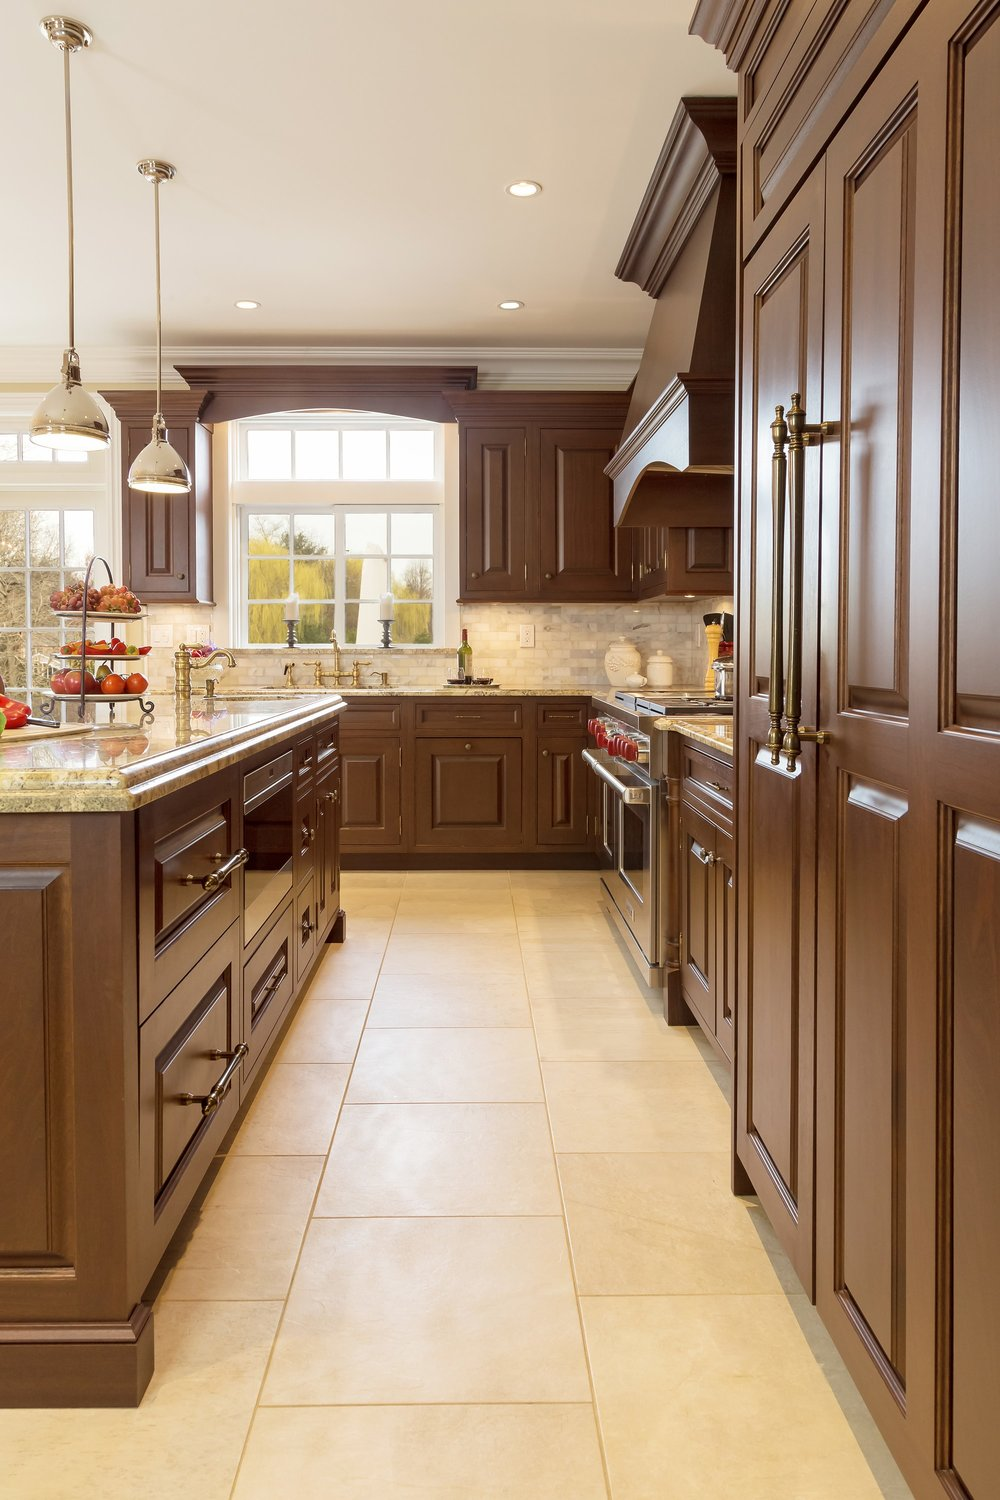 Traditional style kitchen with wooden brass cabinet